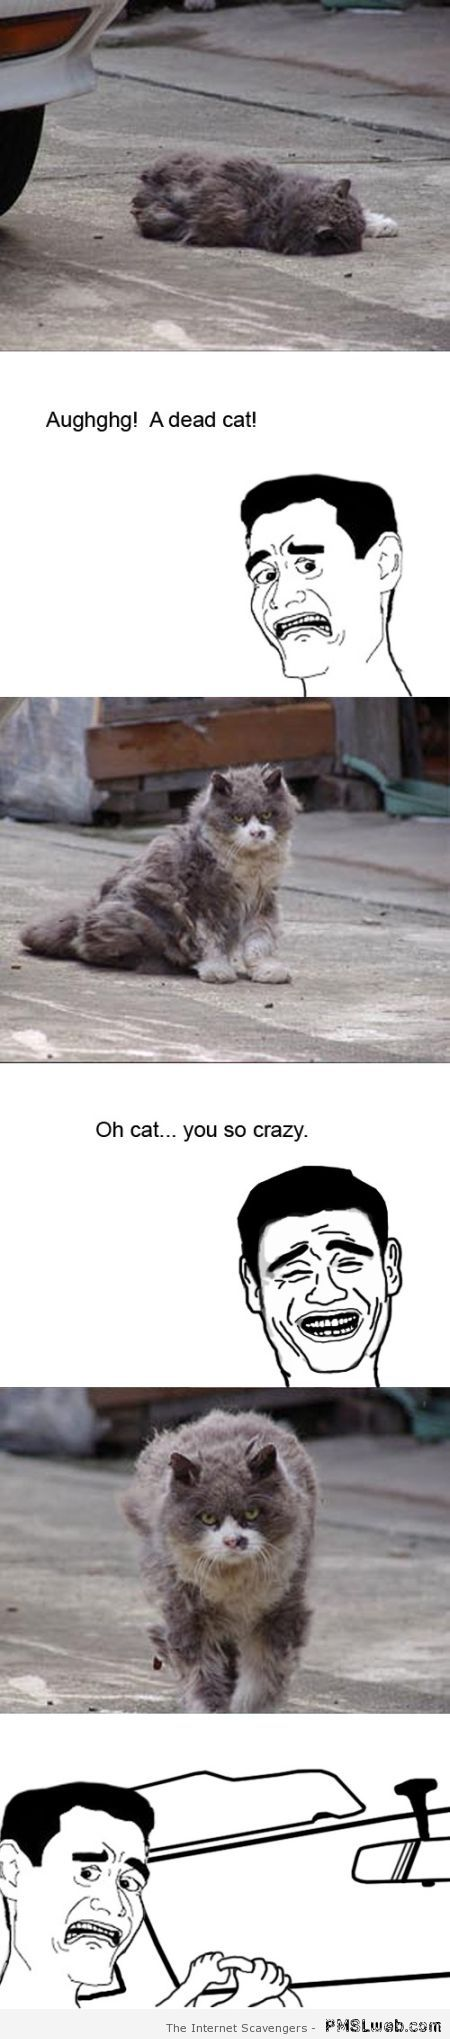 Scary cat meme at PMSLweb.com